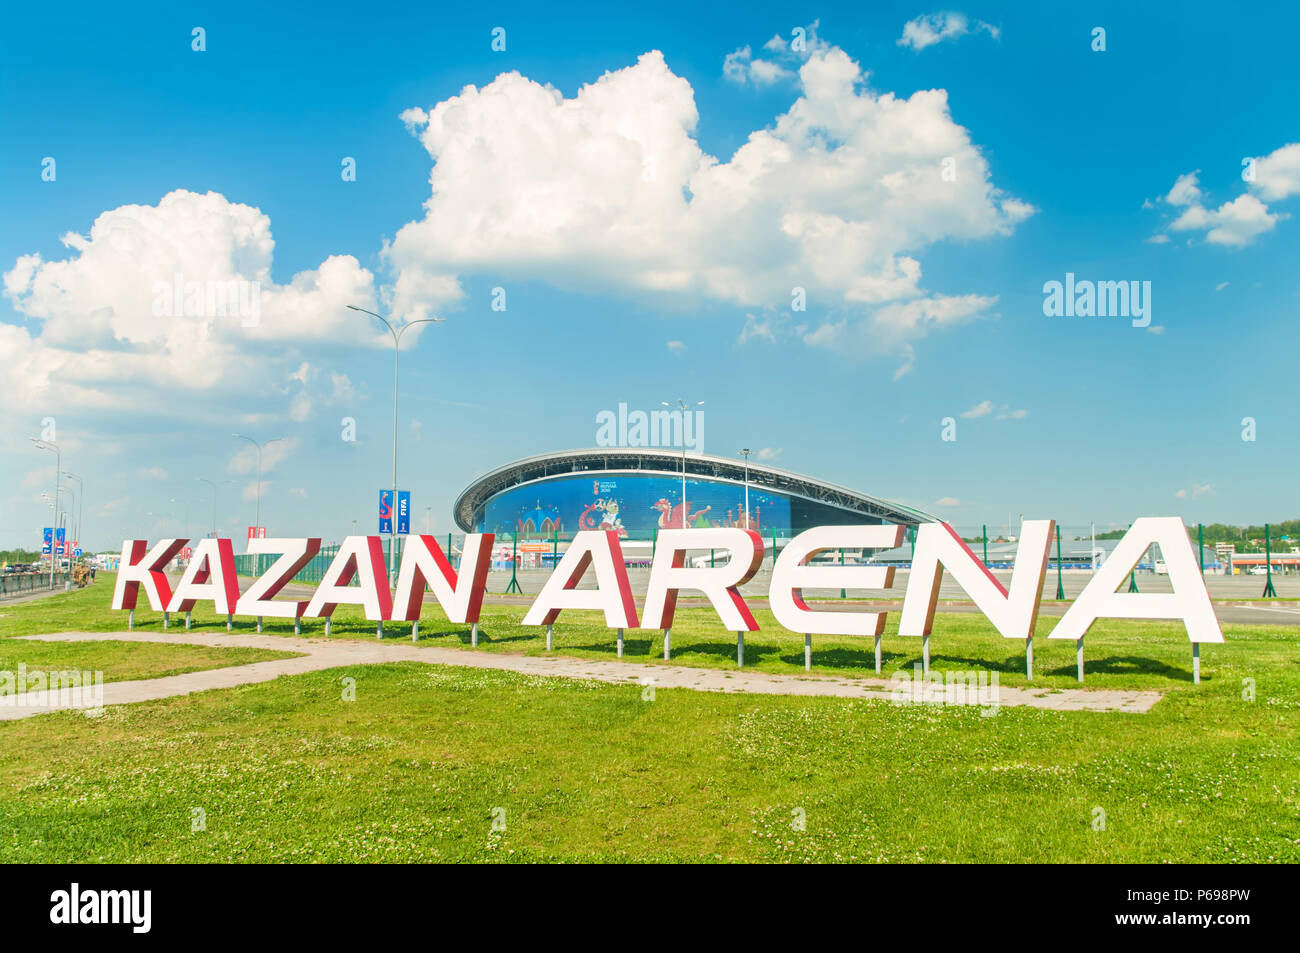 KAZAN, RUSSIA - 25 JUNE, 2018: View of Kazan Arena stadium with big sign on green grass in foreground and stadium building with big screen in backgrou Stock Photo